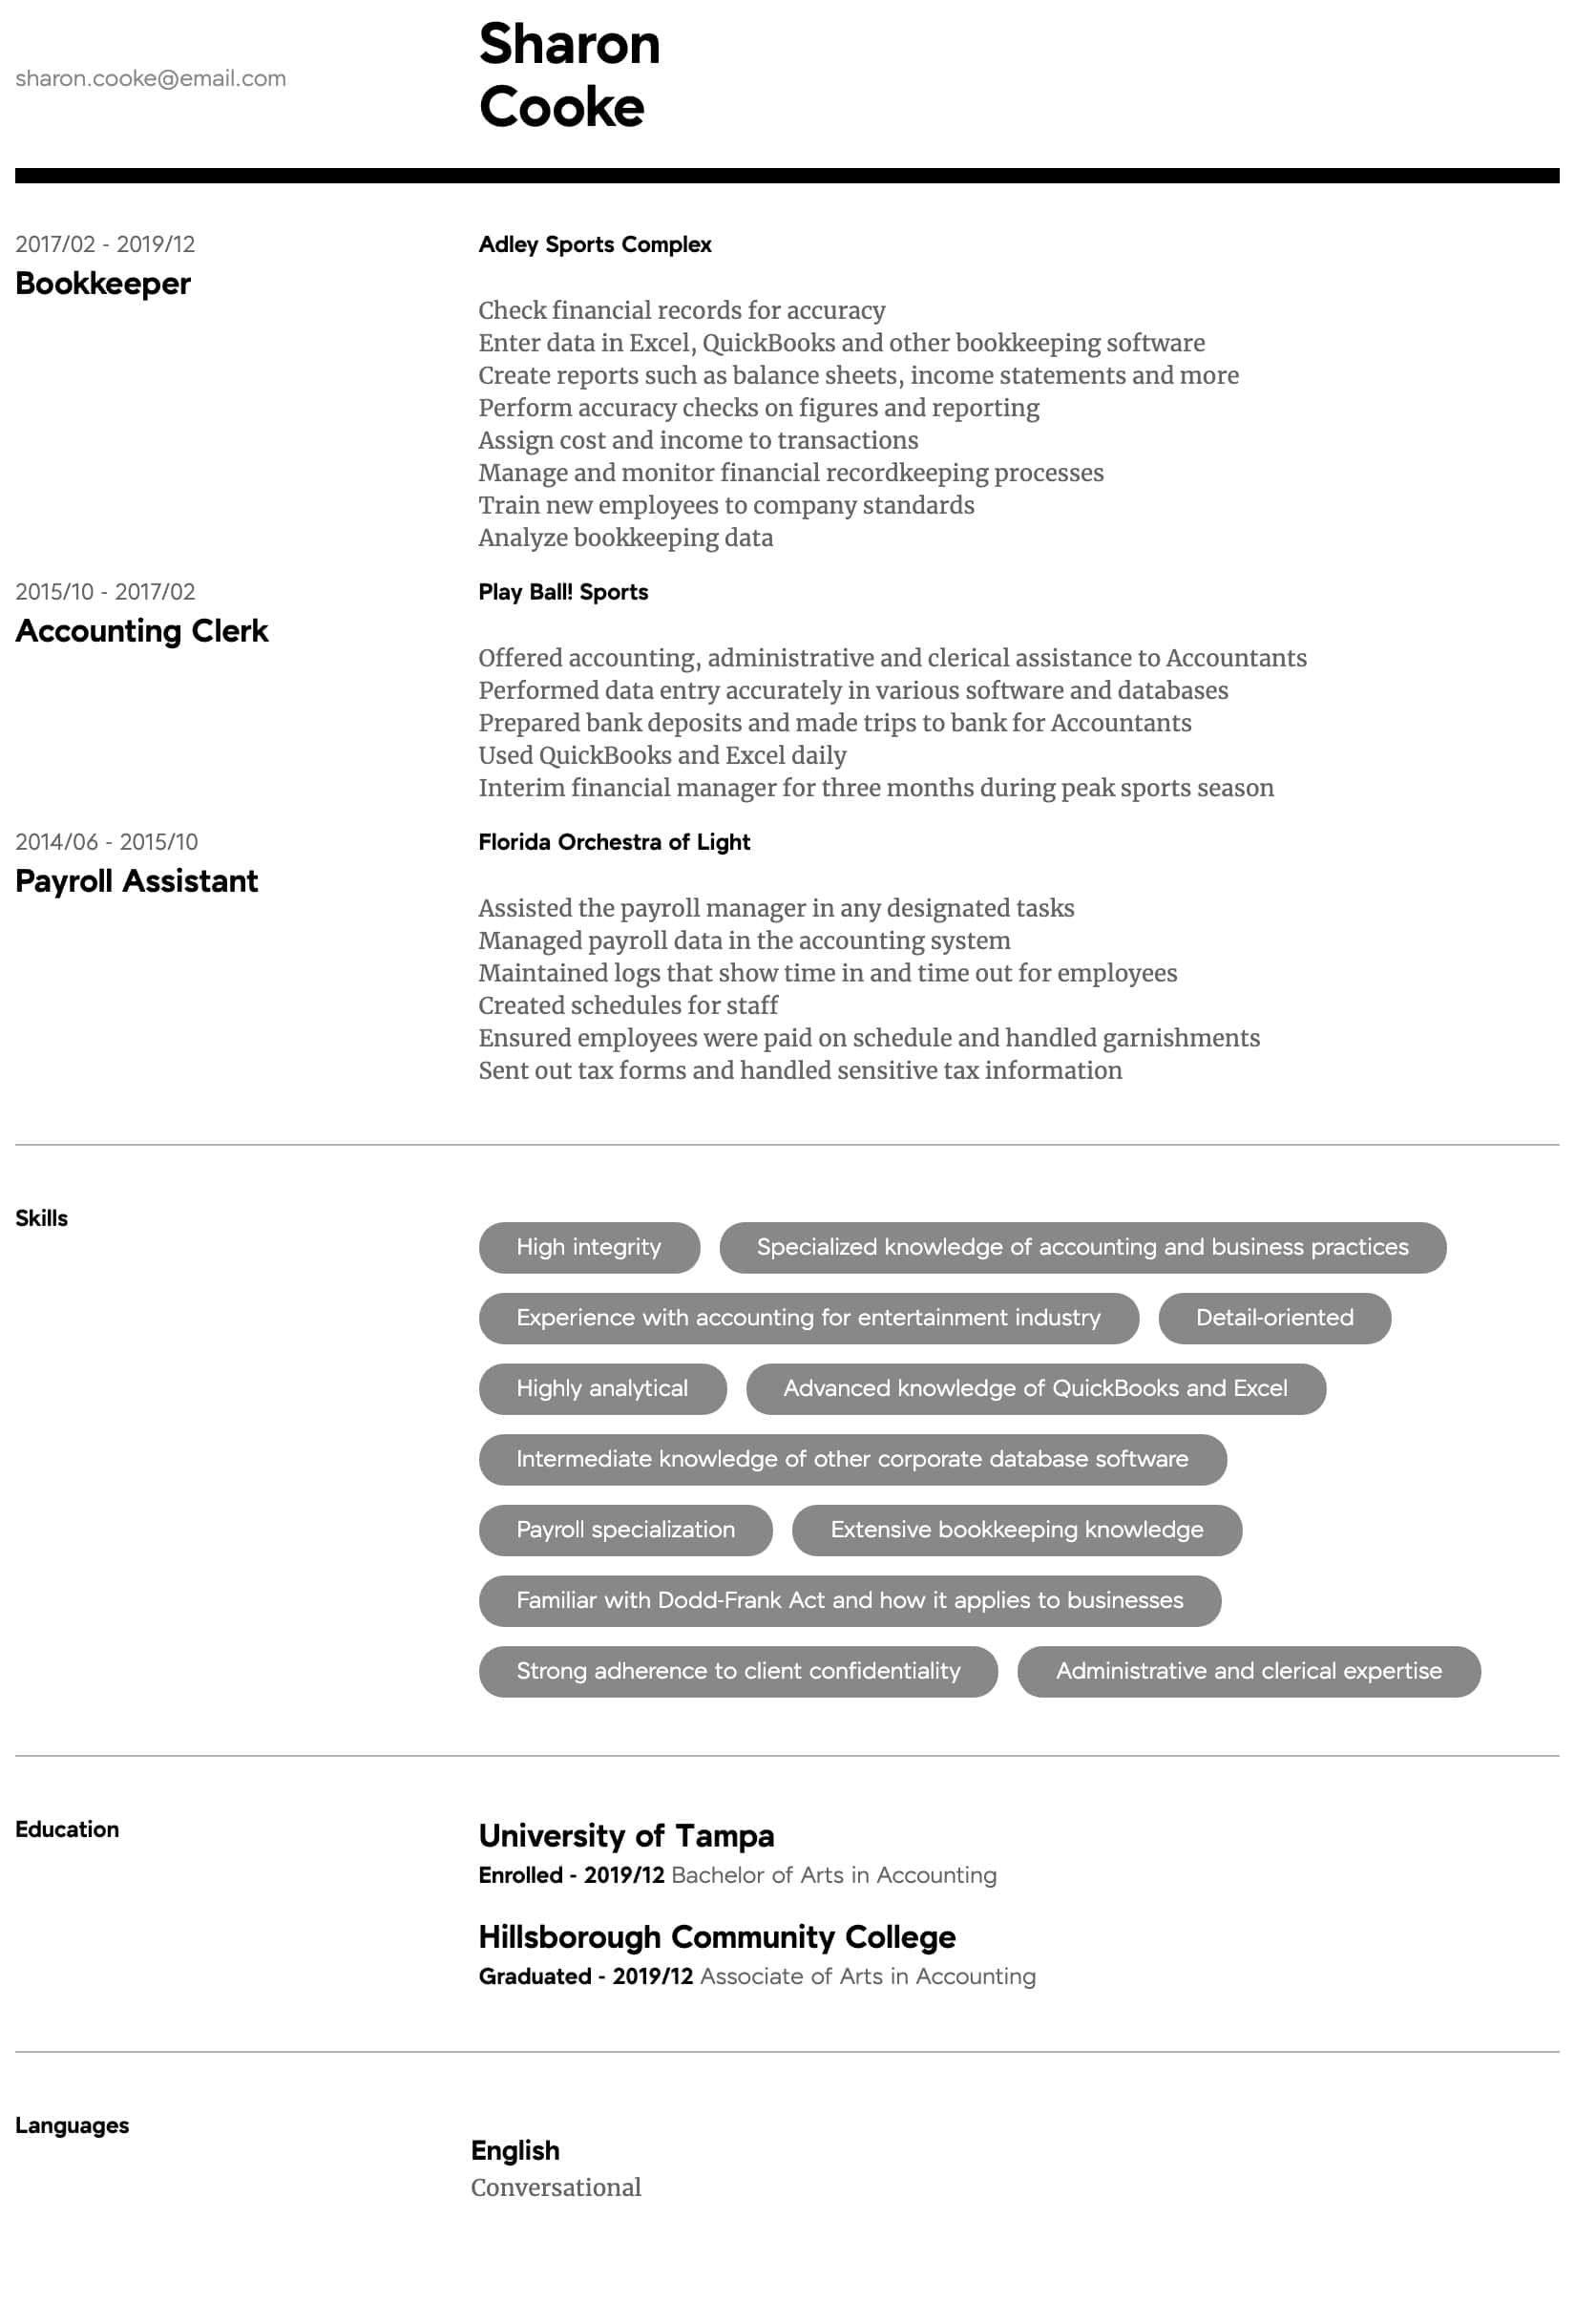 accountant resume samples all experience levels accounting skills summary intermediate Resume Accounting Resume Skills Summary